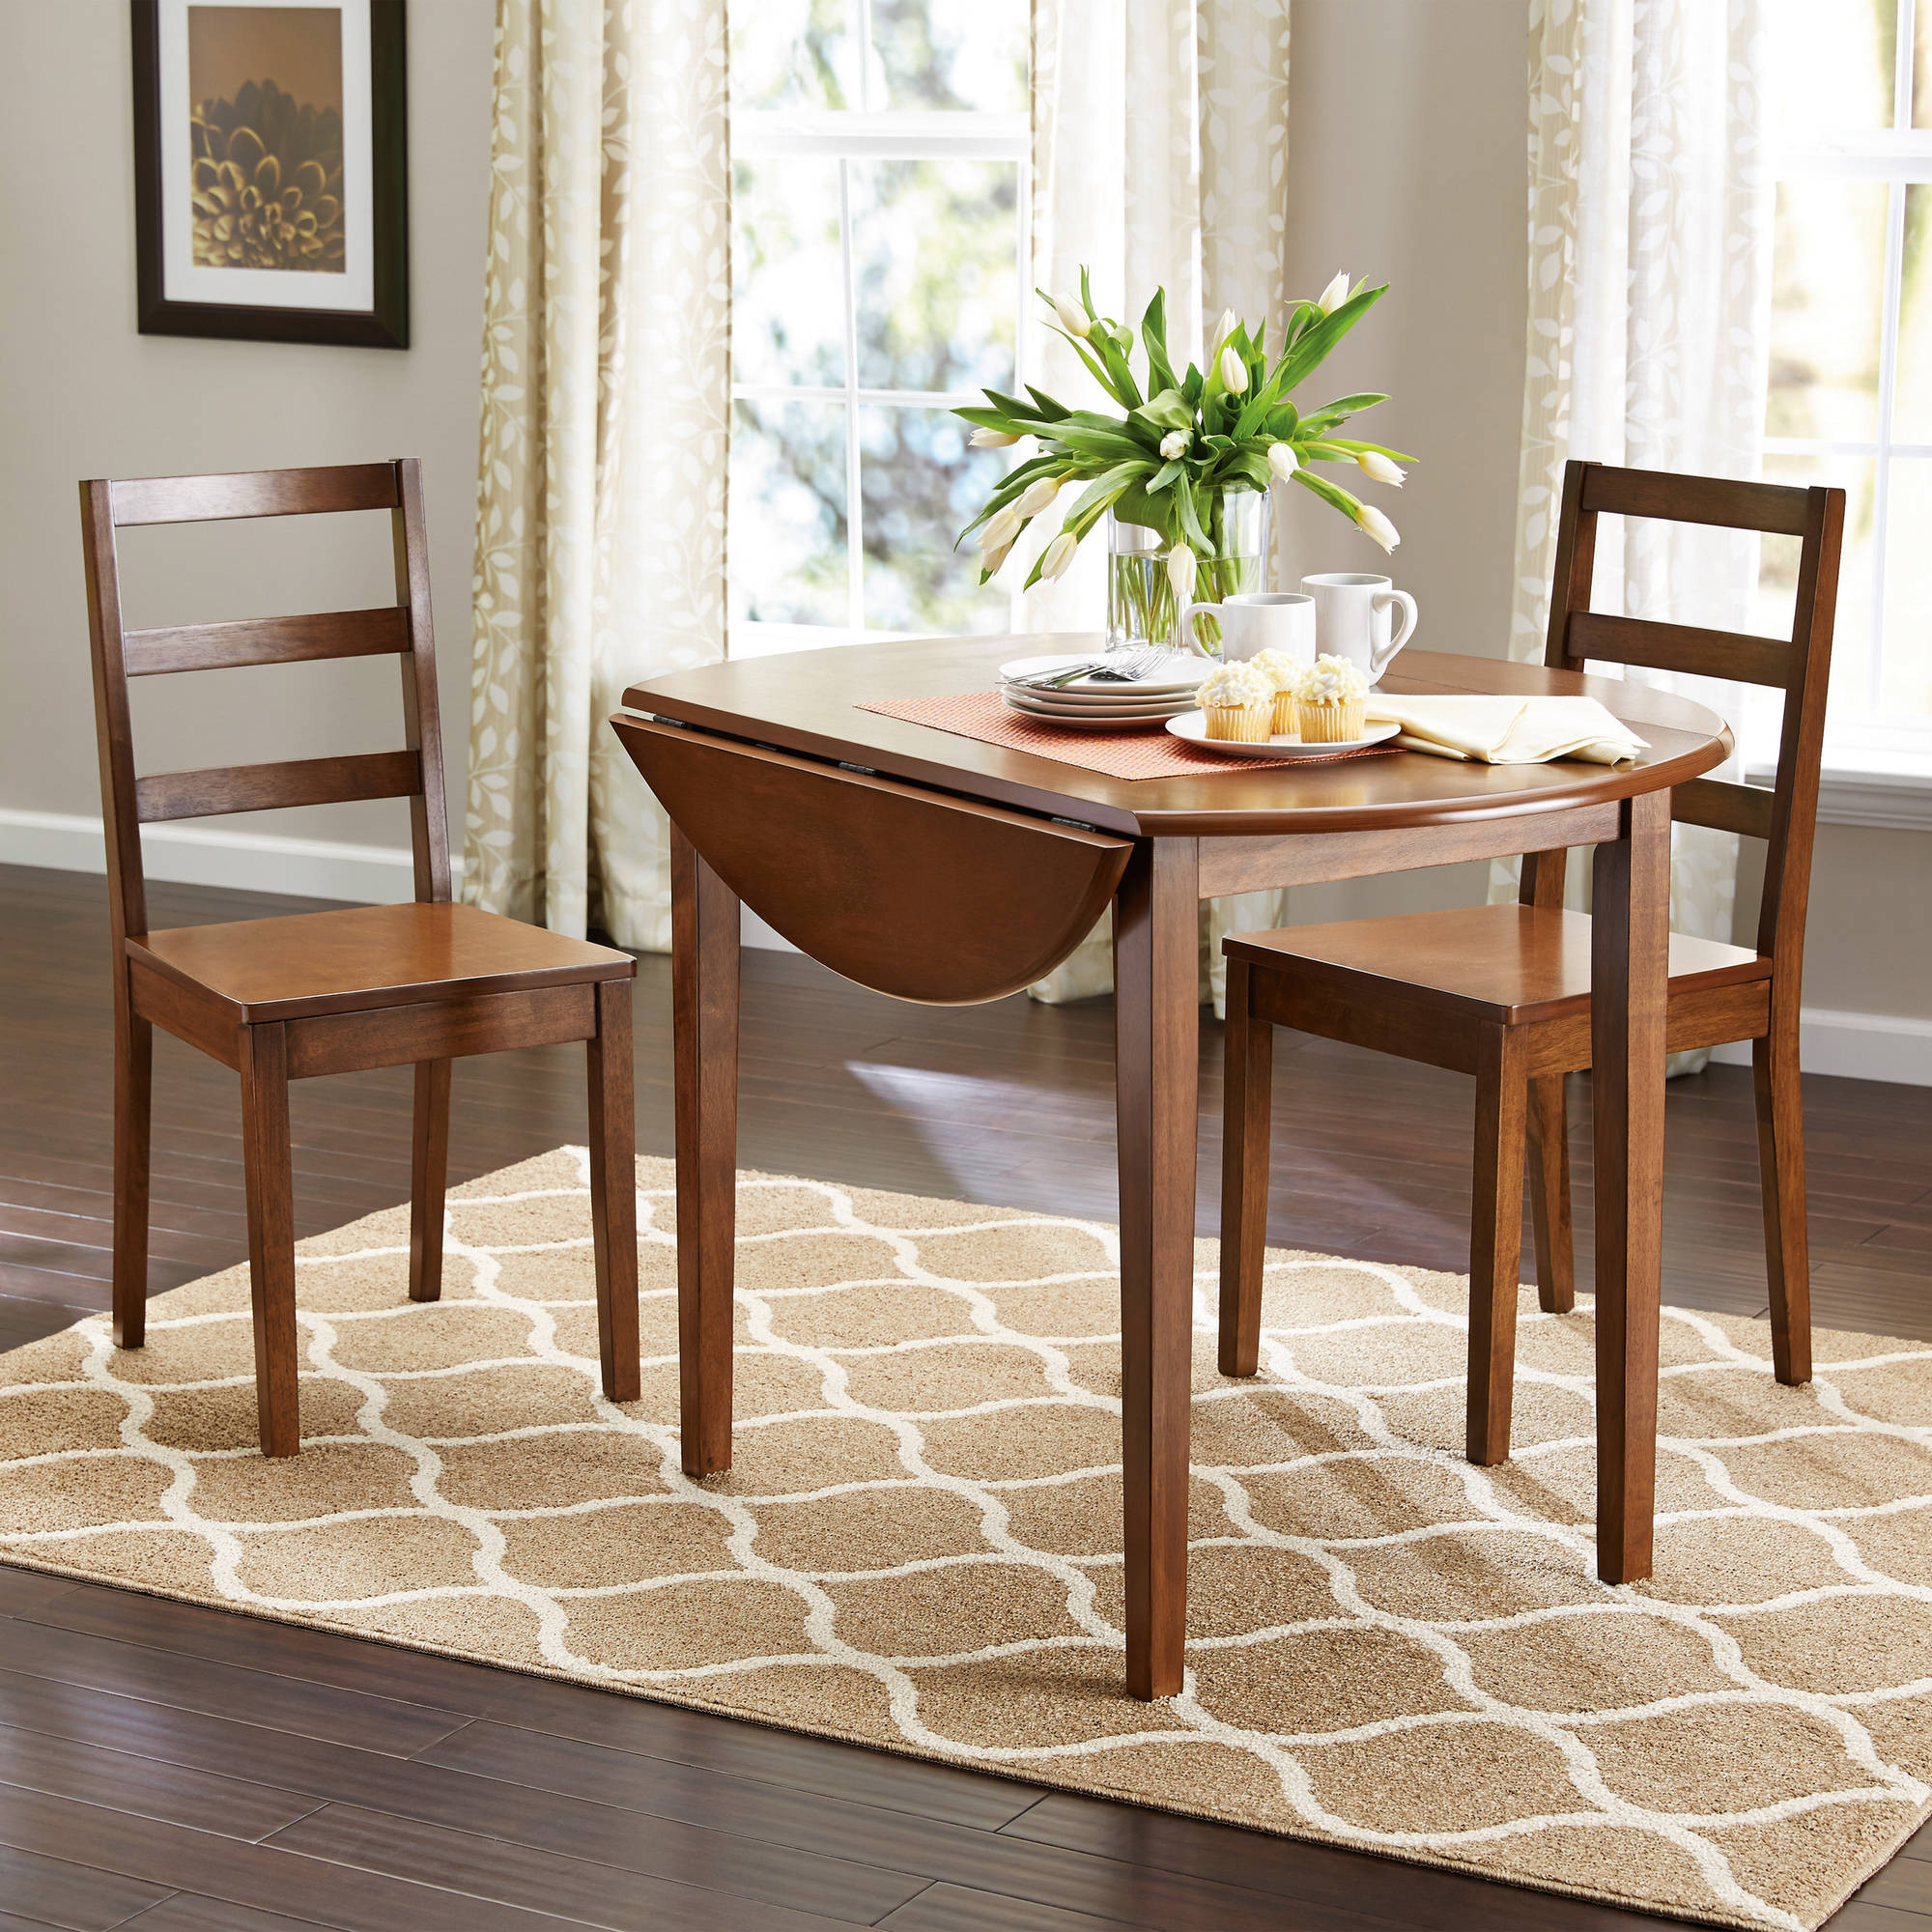 Best ideas about Walmart Dining Table Set . Save or Pin 50 Walmart Dining Table Set Walnut Counter Height Walnut Now.